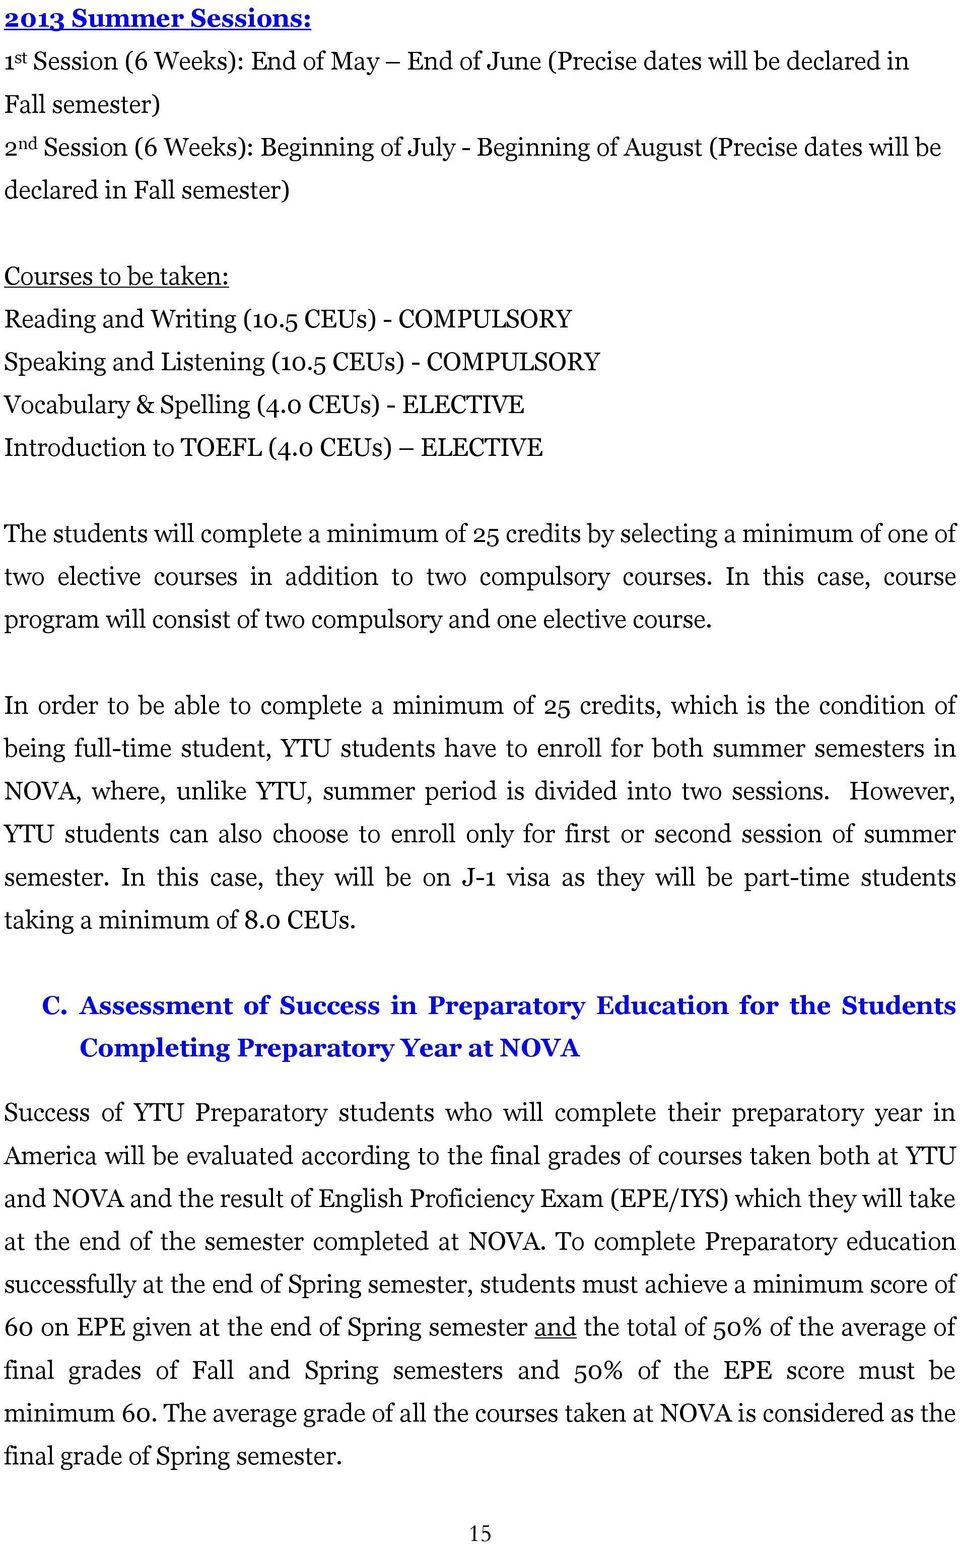 0 CEUs) - ELECTIVE Introduction to TOEFL (4.